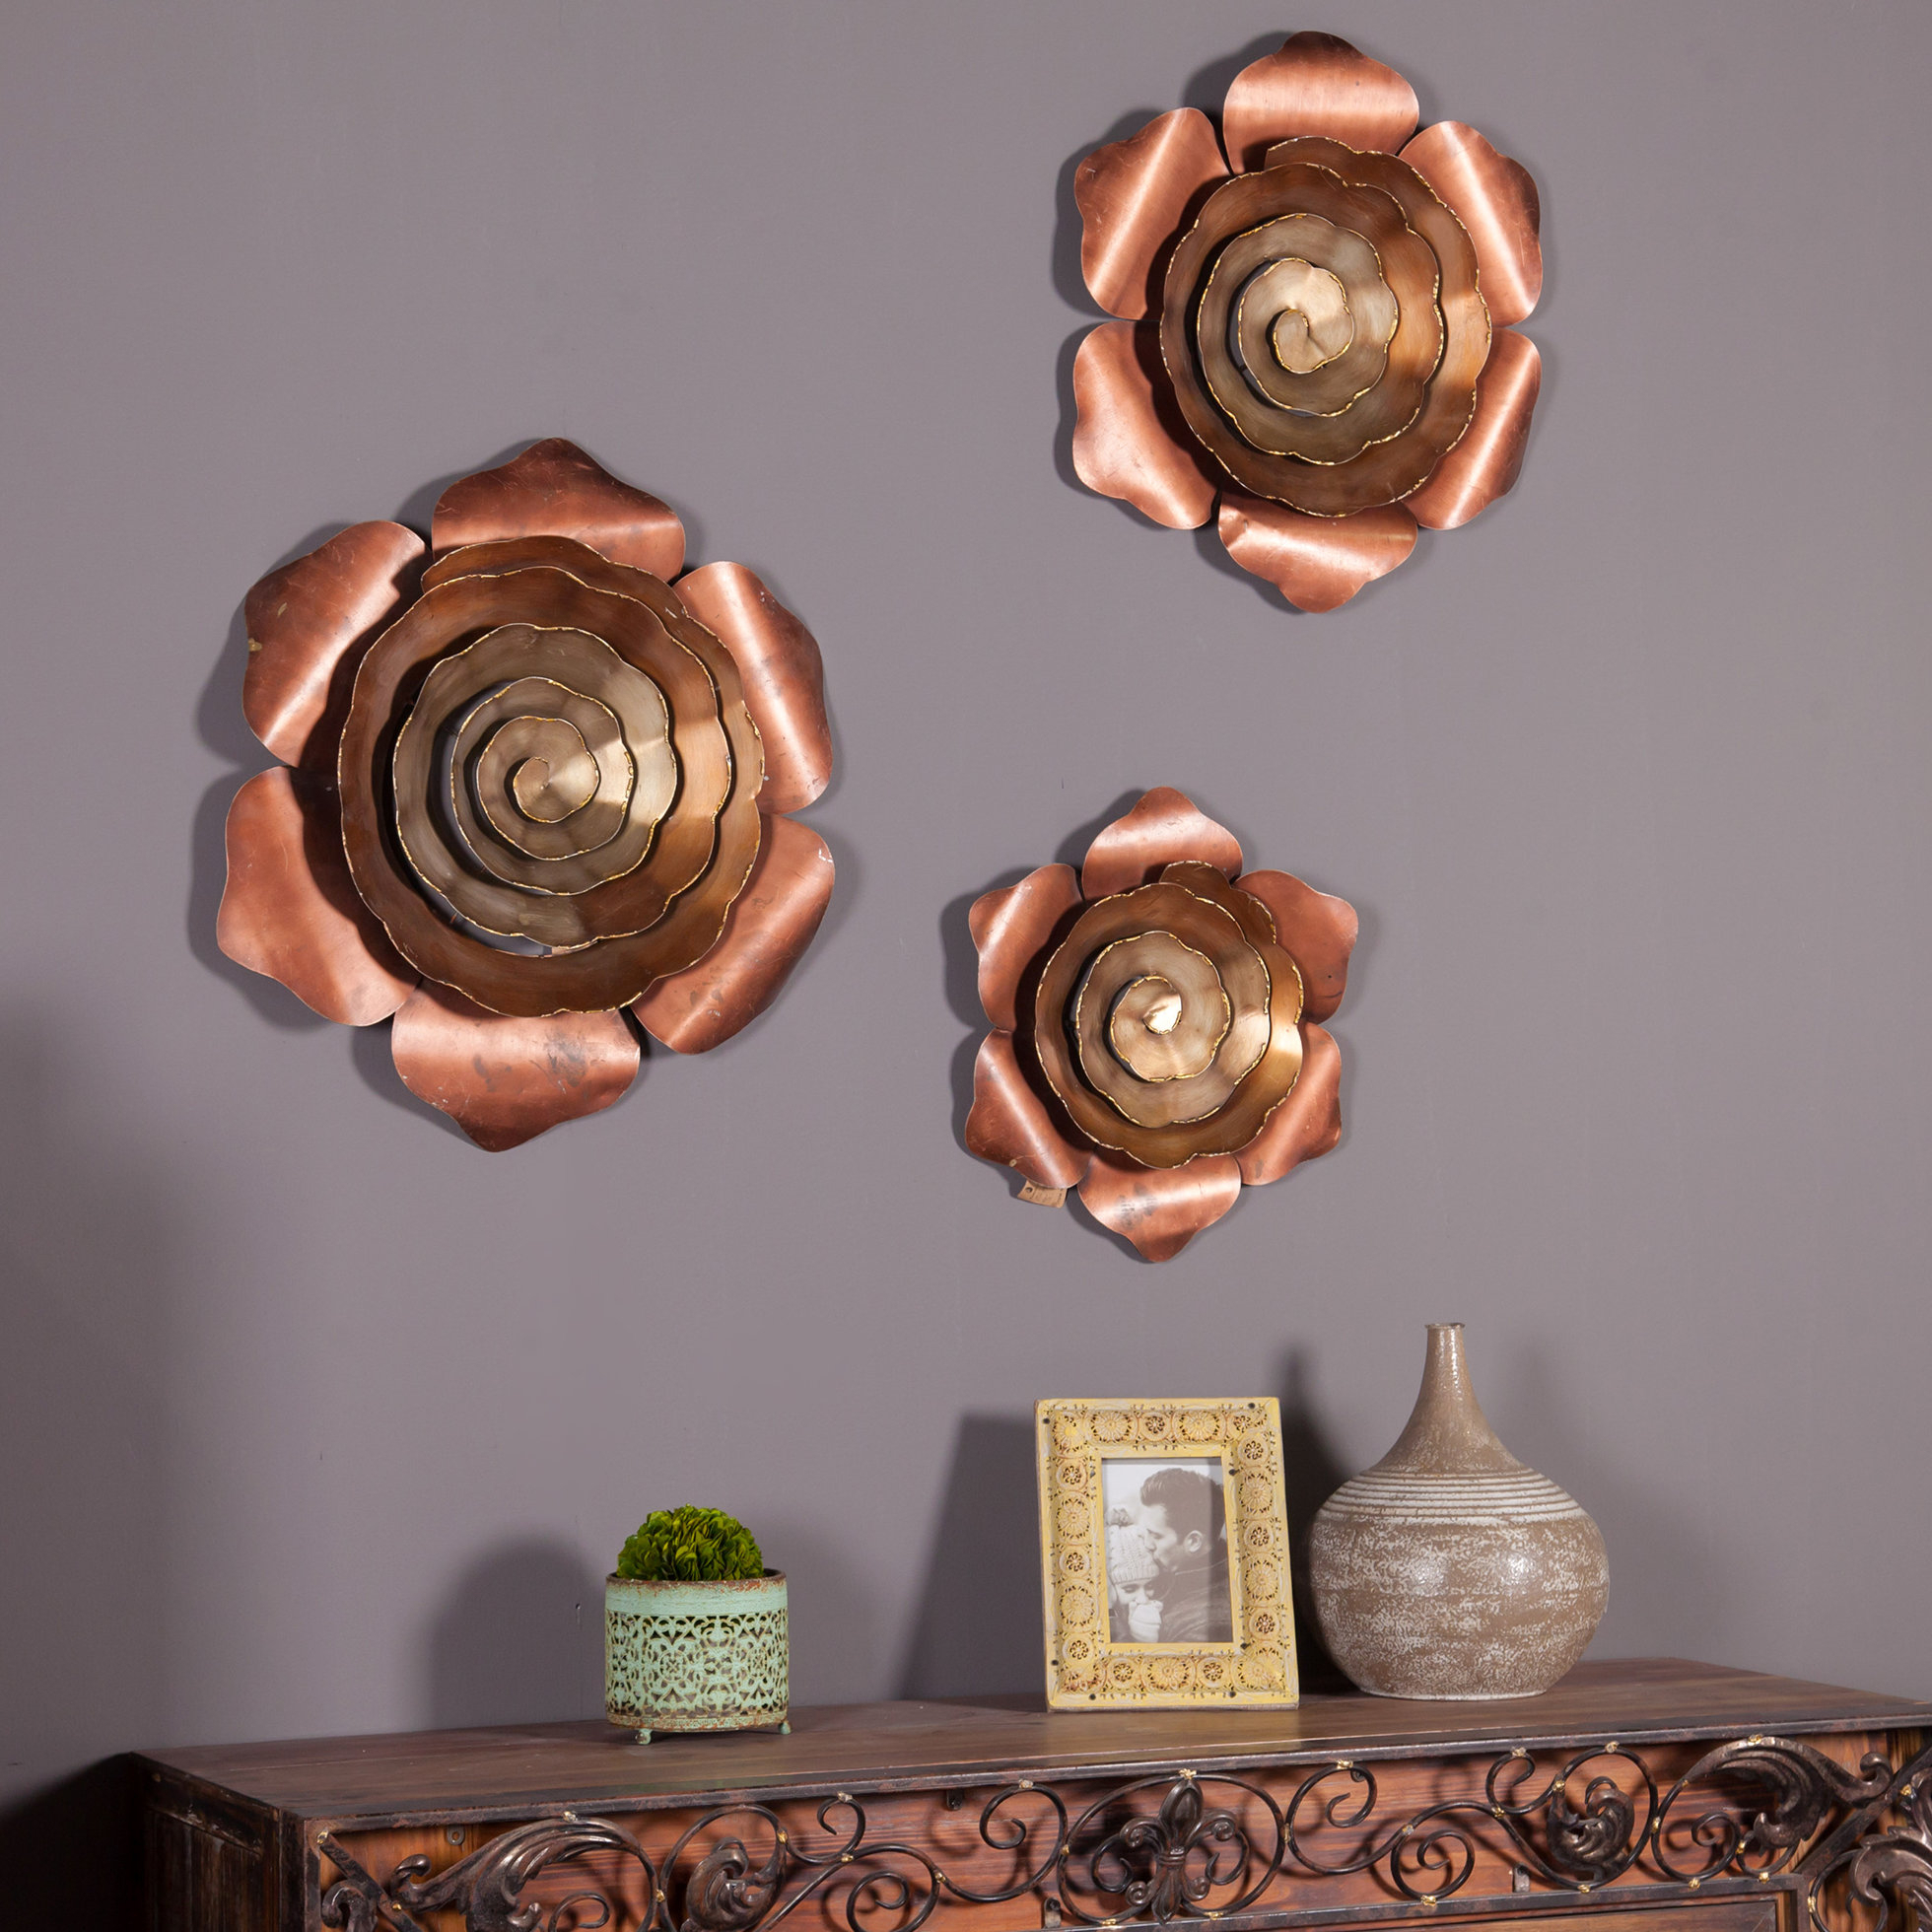 3 Piece Wall Decor Set | Wayfair for 3 Piece Magnolia Brown Panel Wall Decor Sets (Image 7 of 30)